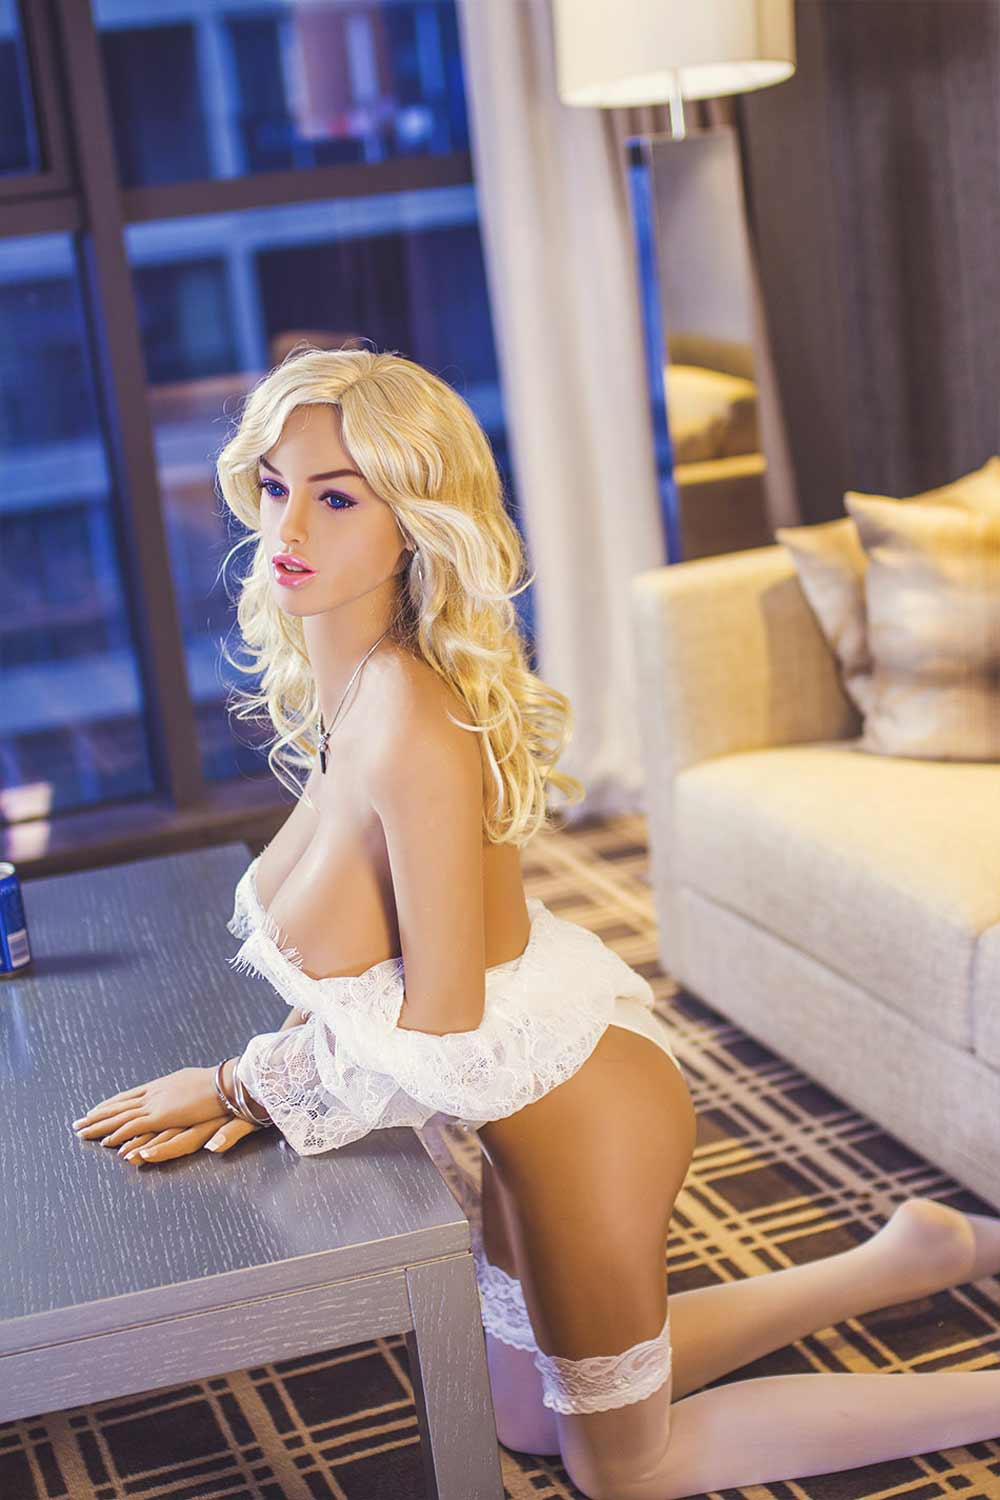 Sex doll with legs kneeling on the ground